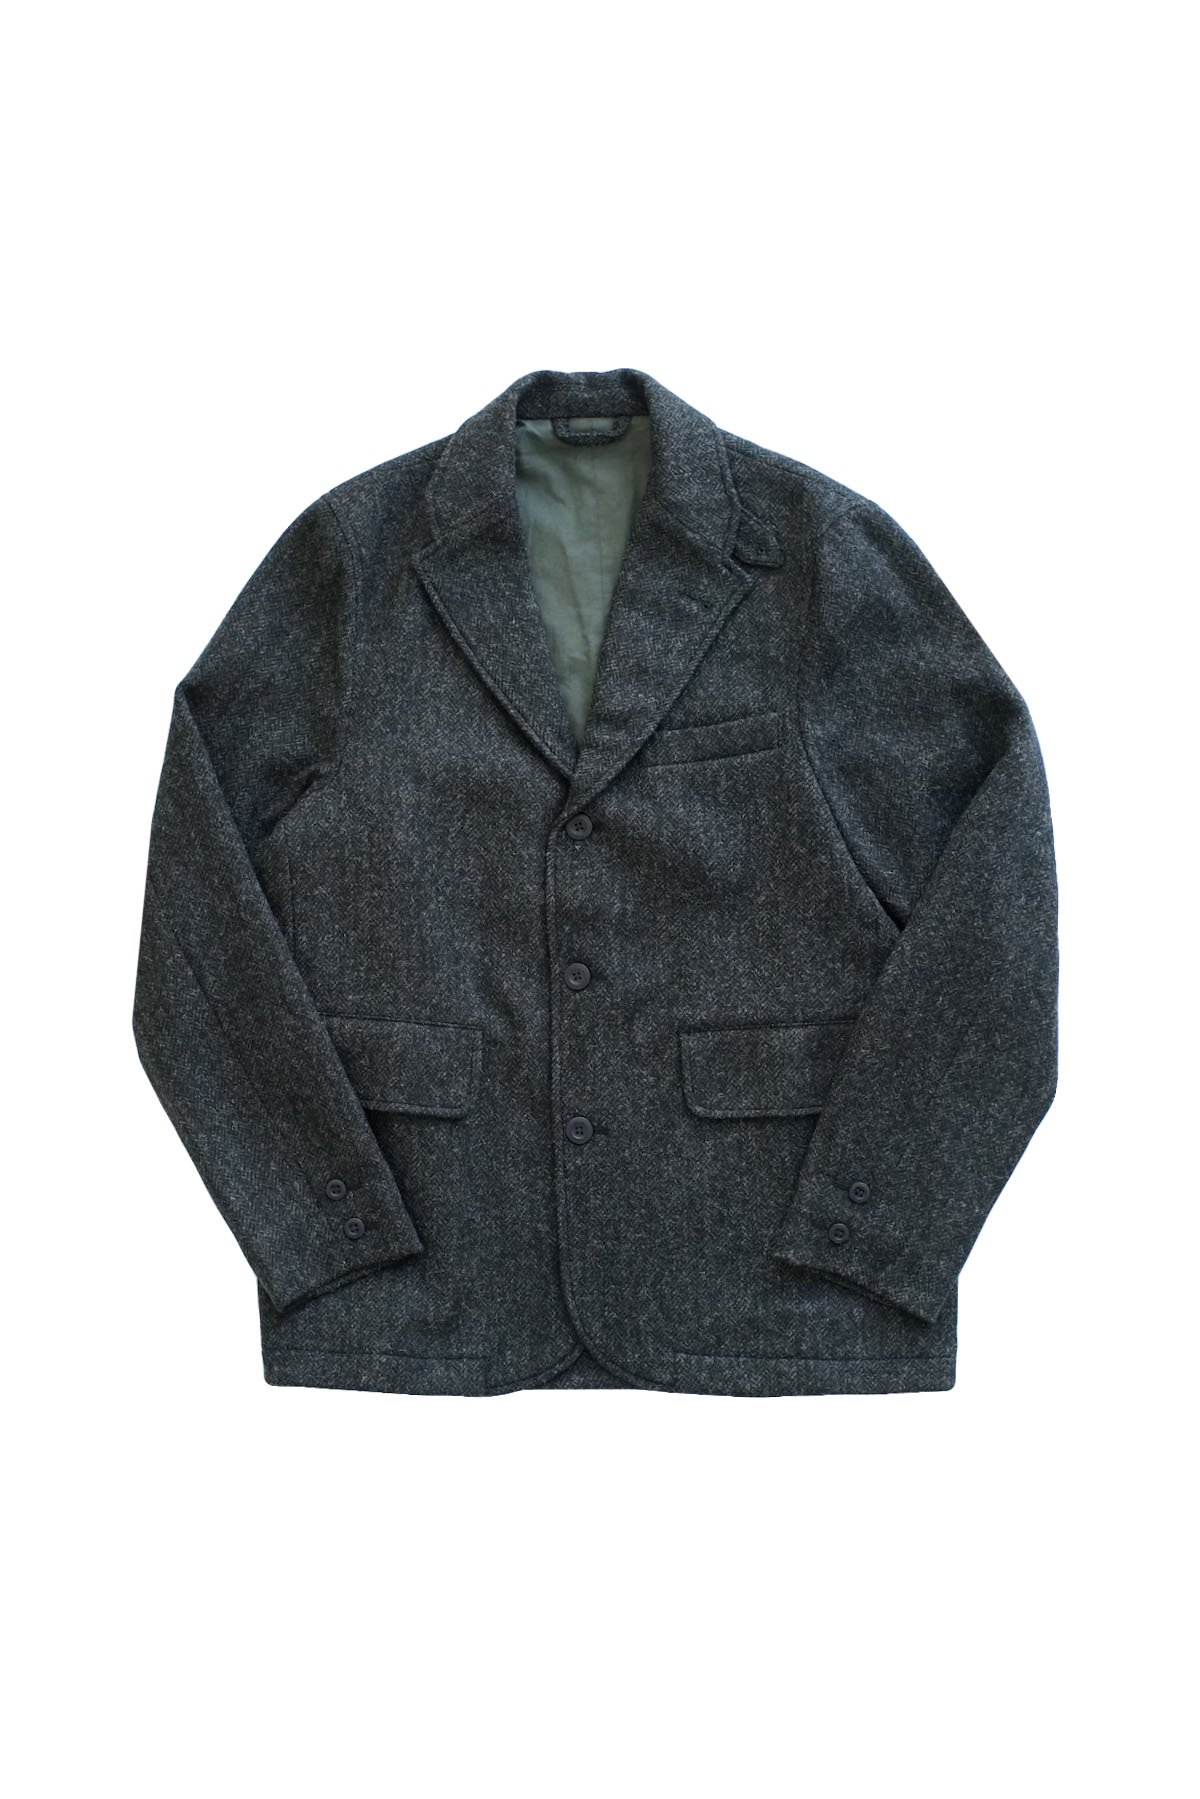 - Nigel Cabourn - WOOL SKIRT BLAZER HERRINGBONE WOOL CHACOAL GRAY - PRICE 93,500 tax-in